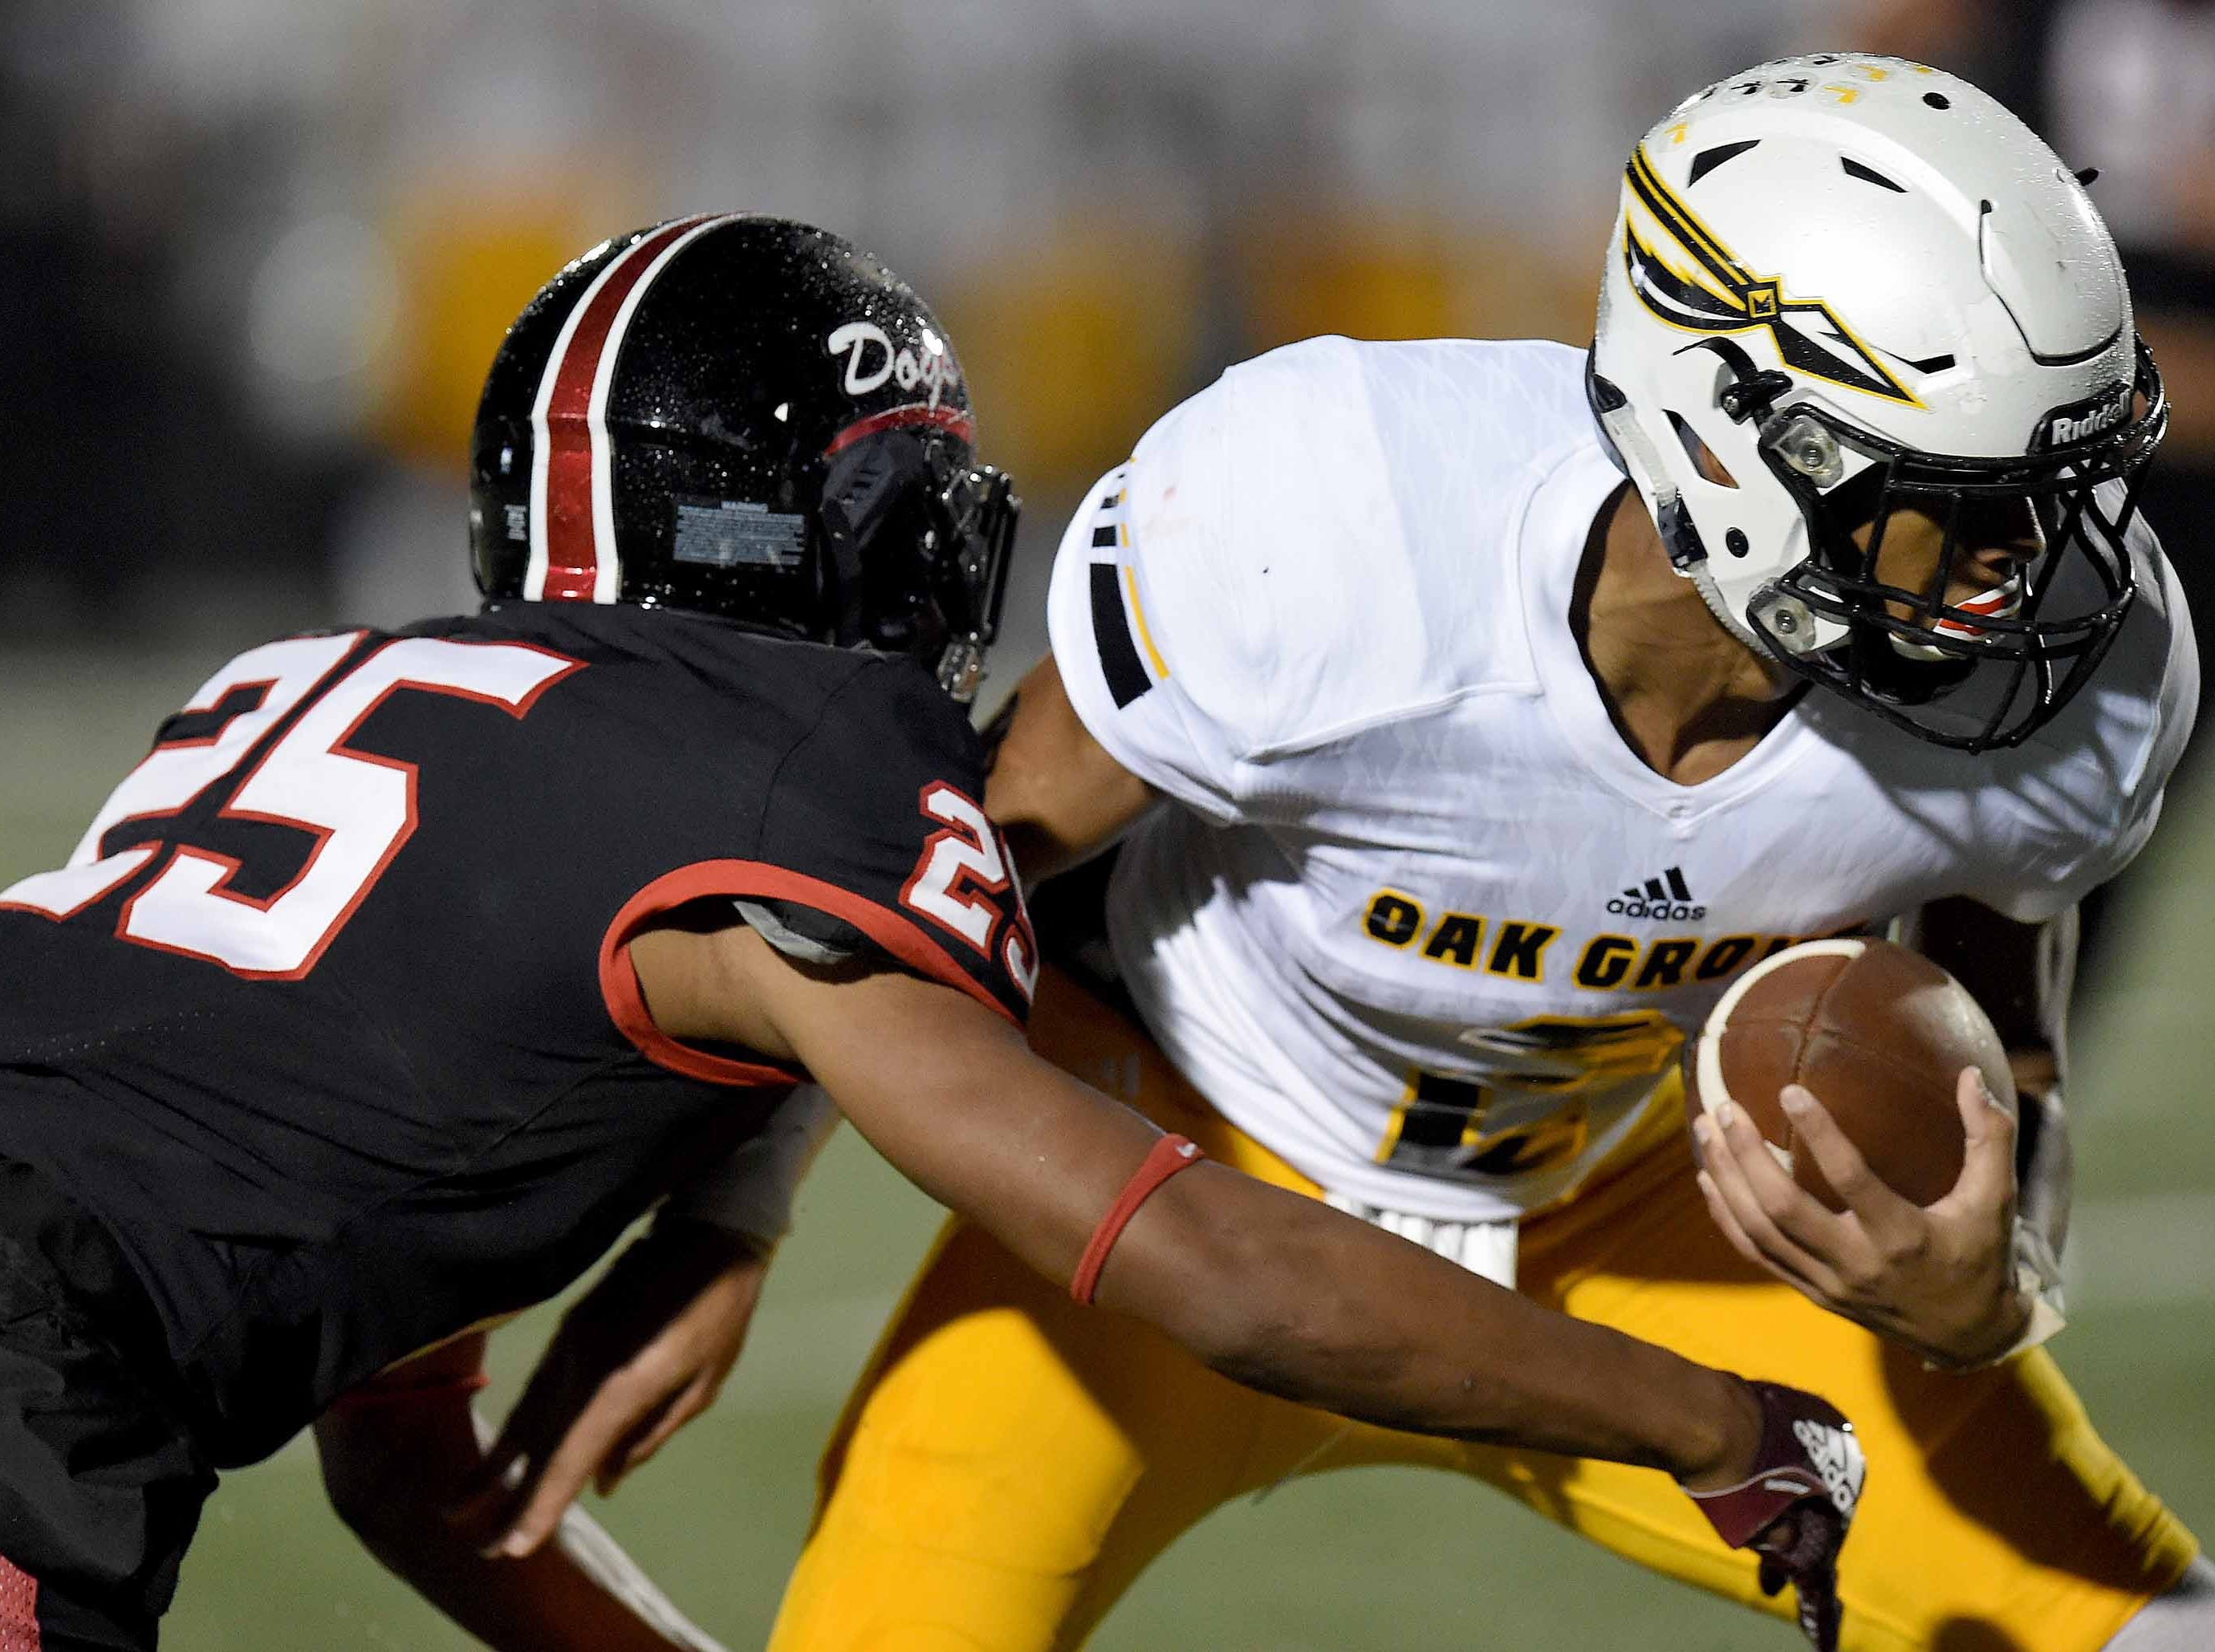 Oak Grove's Kevin Barnett (2) looks for additional yardage against Brandon in the MHSAA Class 6A South State Championship on Friday, November 23, 2018, at Brandon High School in Brandon, Miss.